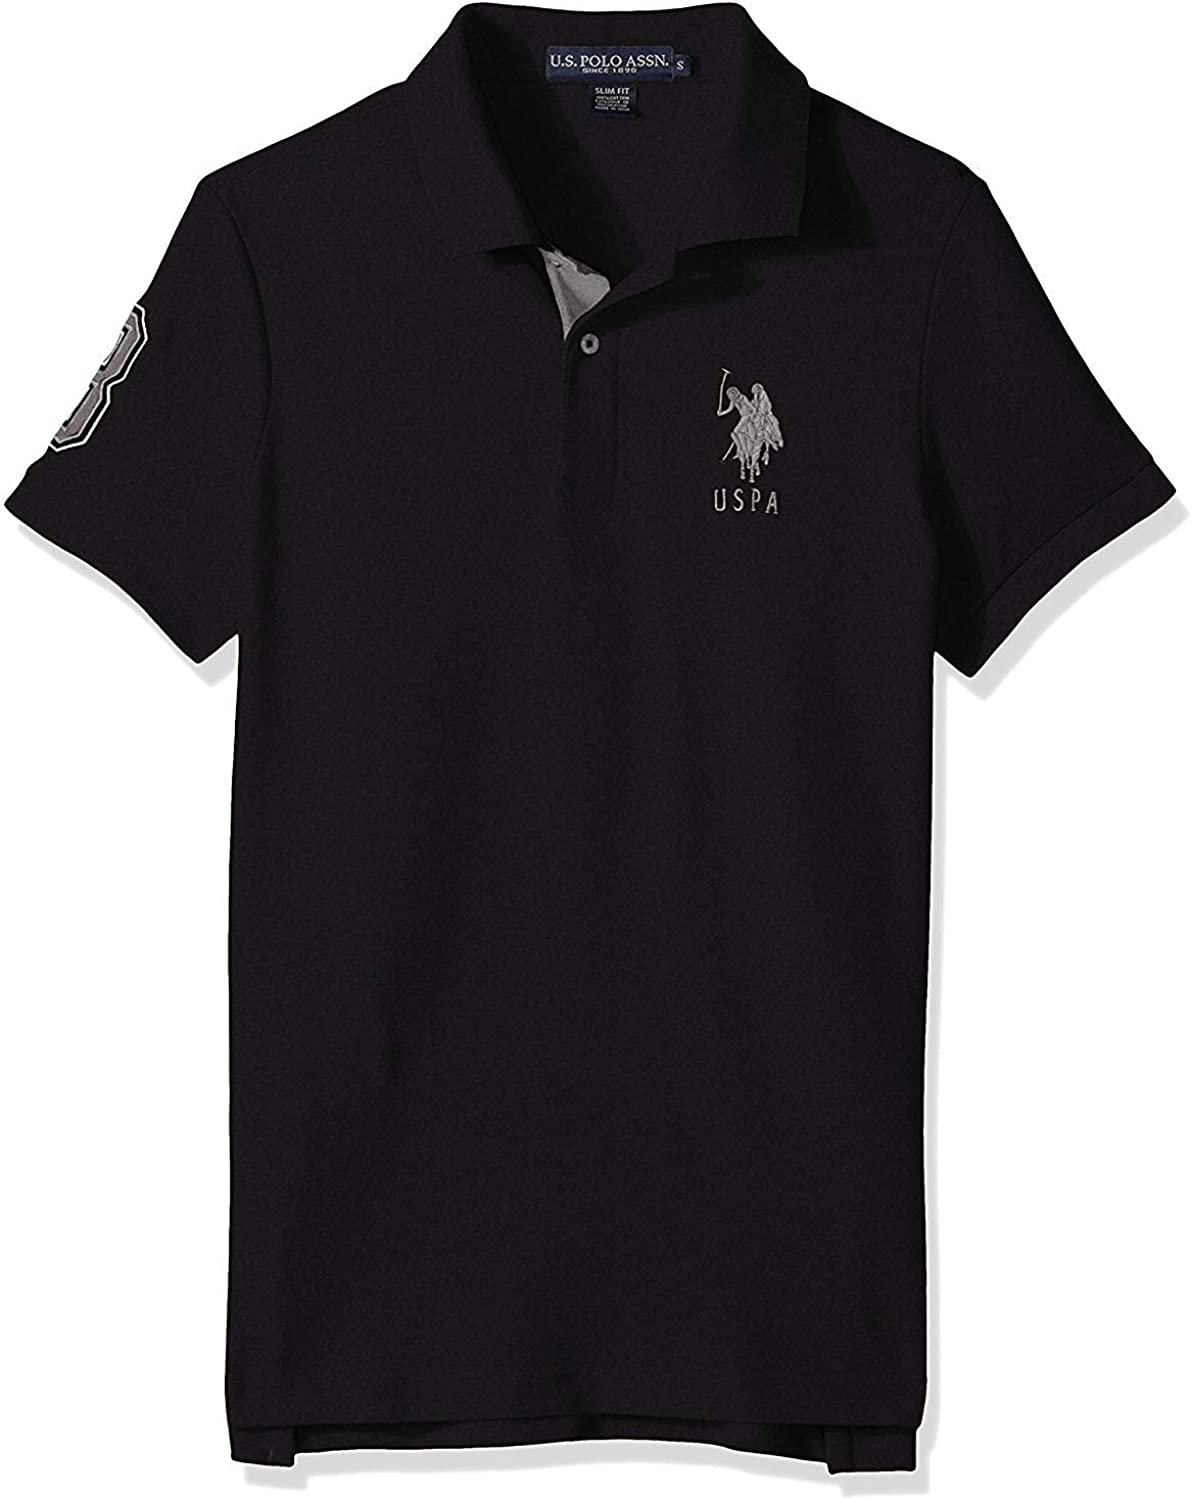 Mens Short-Sleeve Polo Shirt with Applique U.S Polo Assn